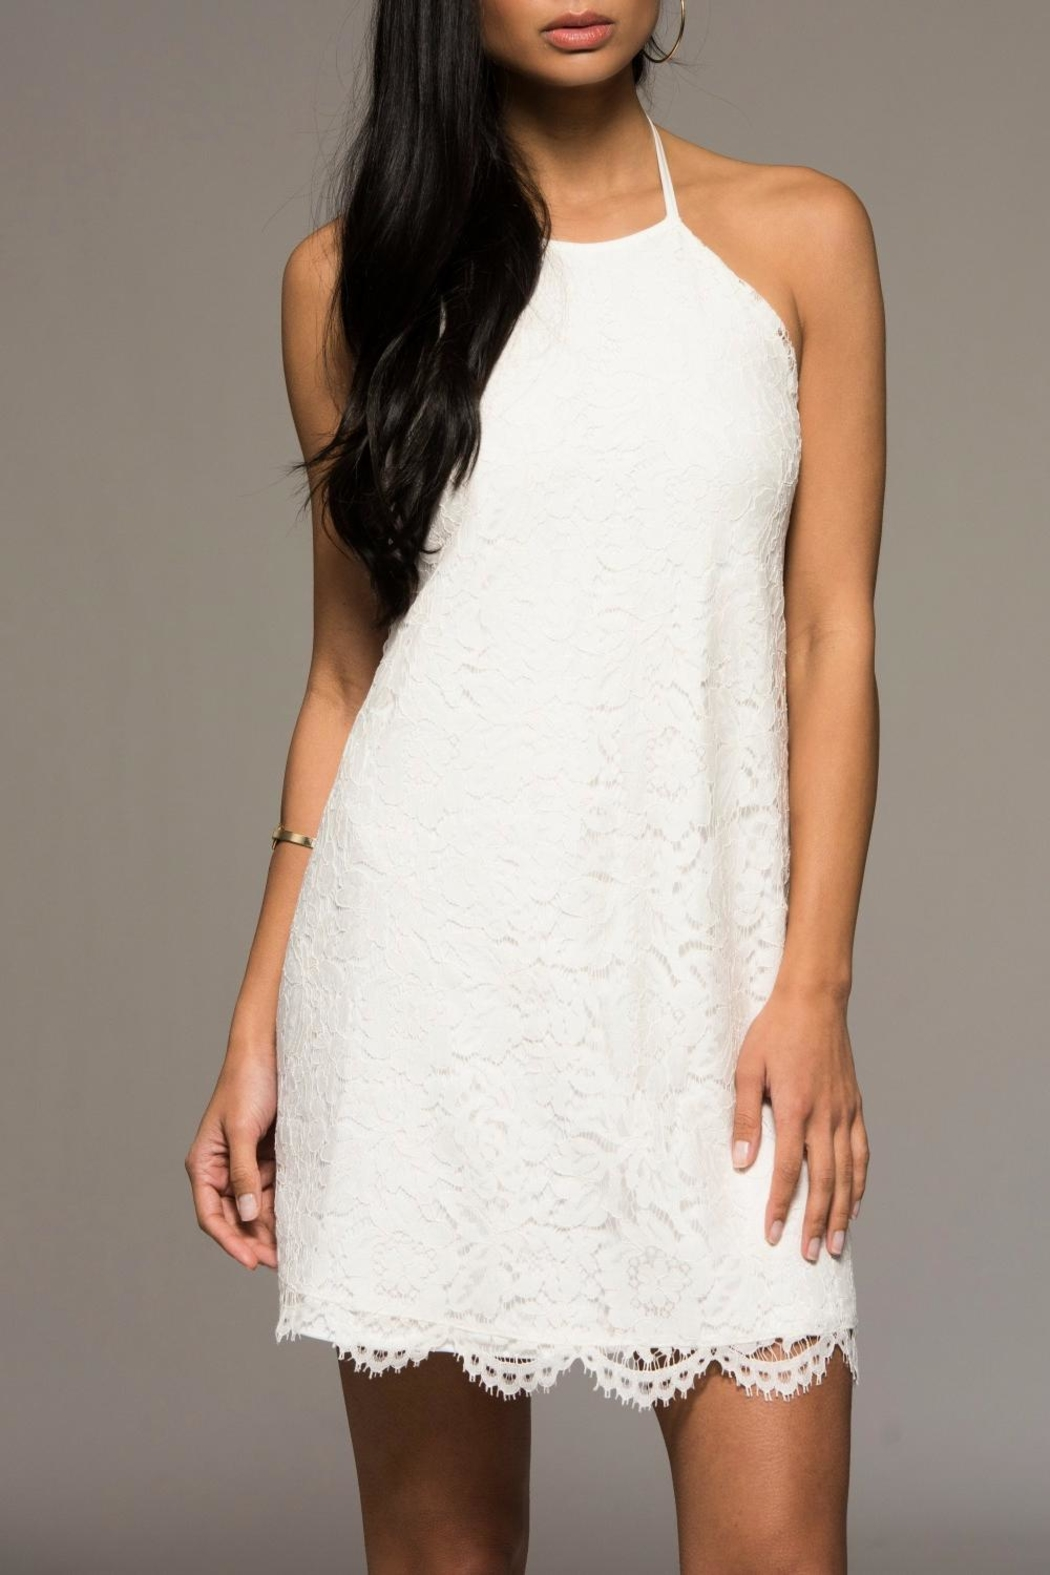 Macbeth Collection White Lacey Dress - Main Image